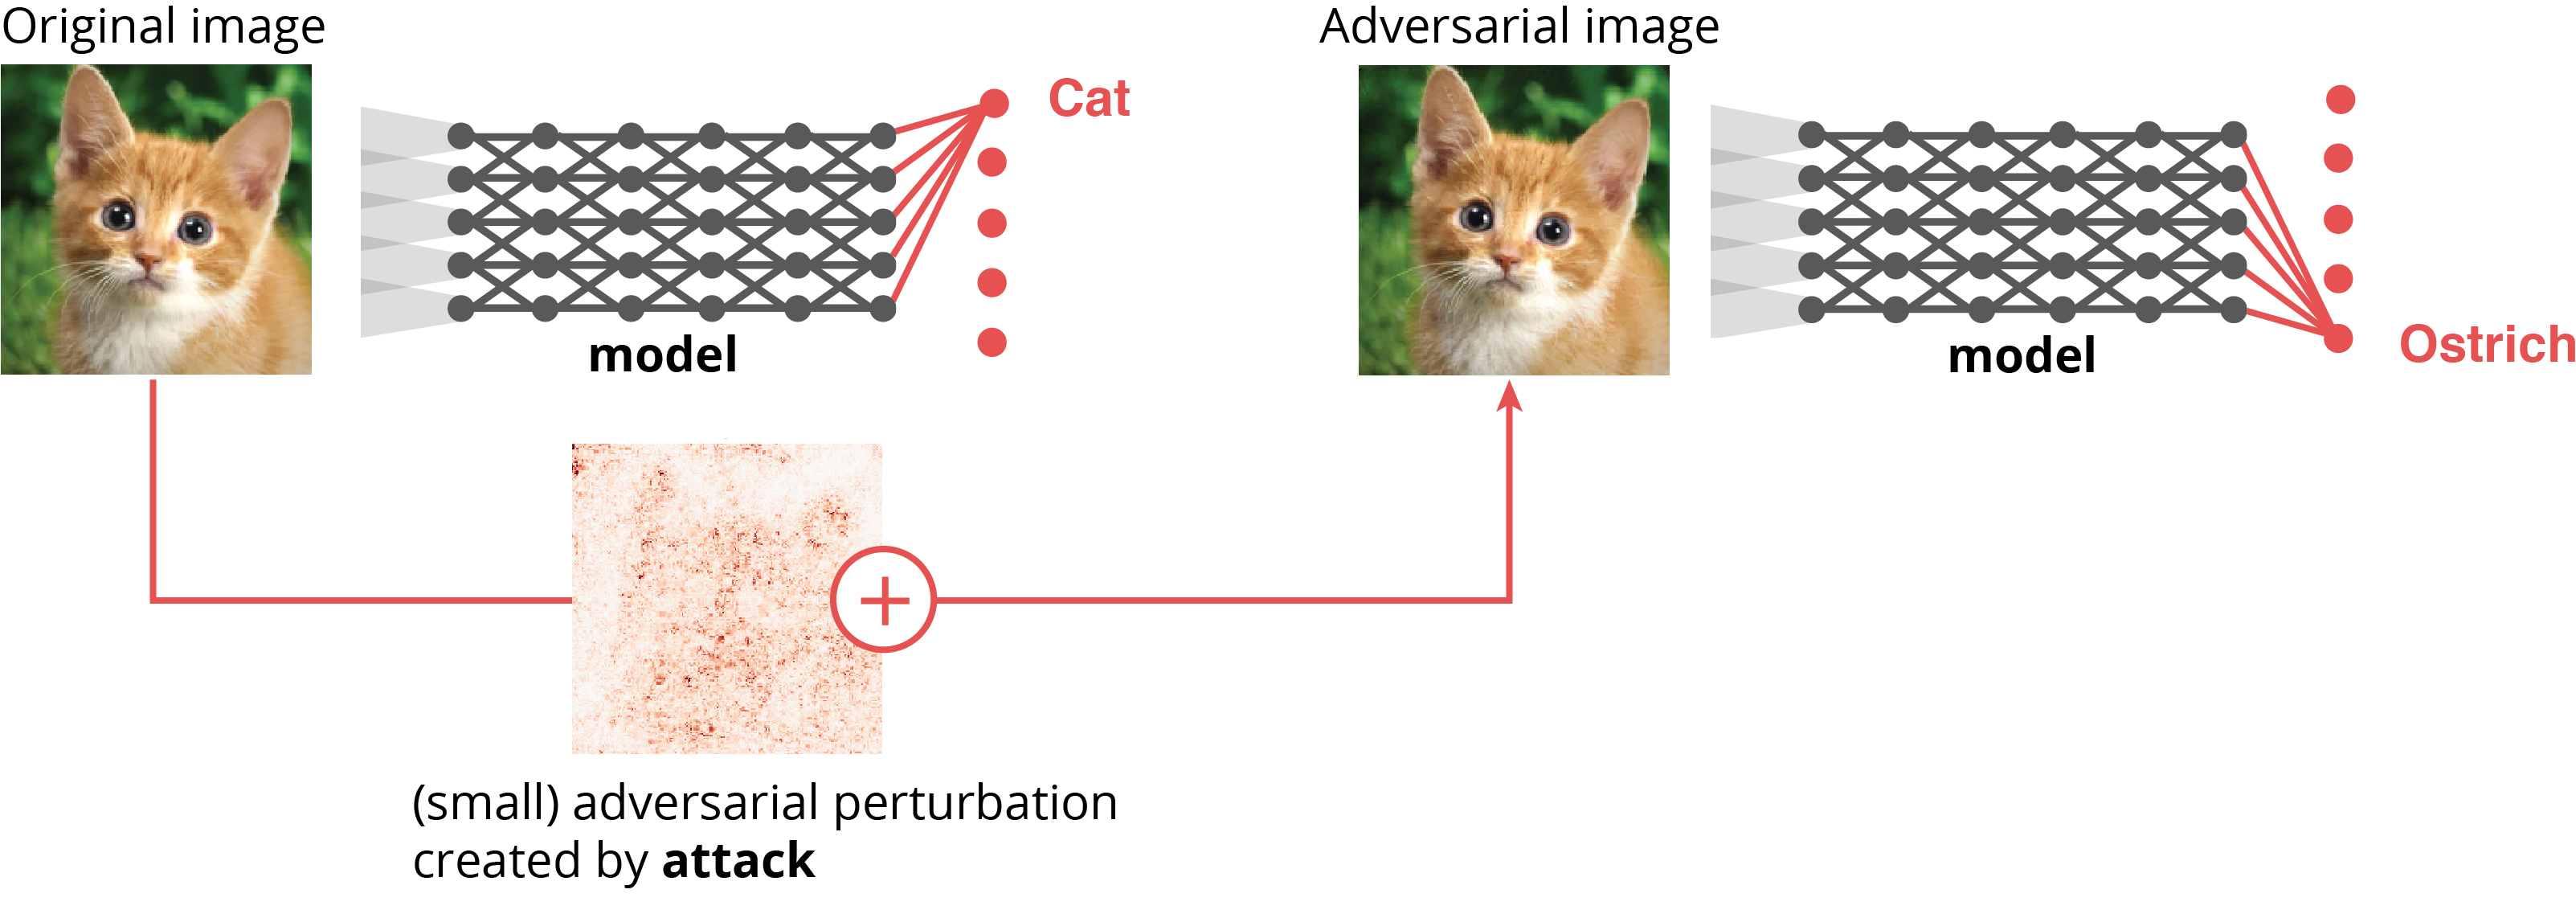 Illustration Adversarial Examples